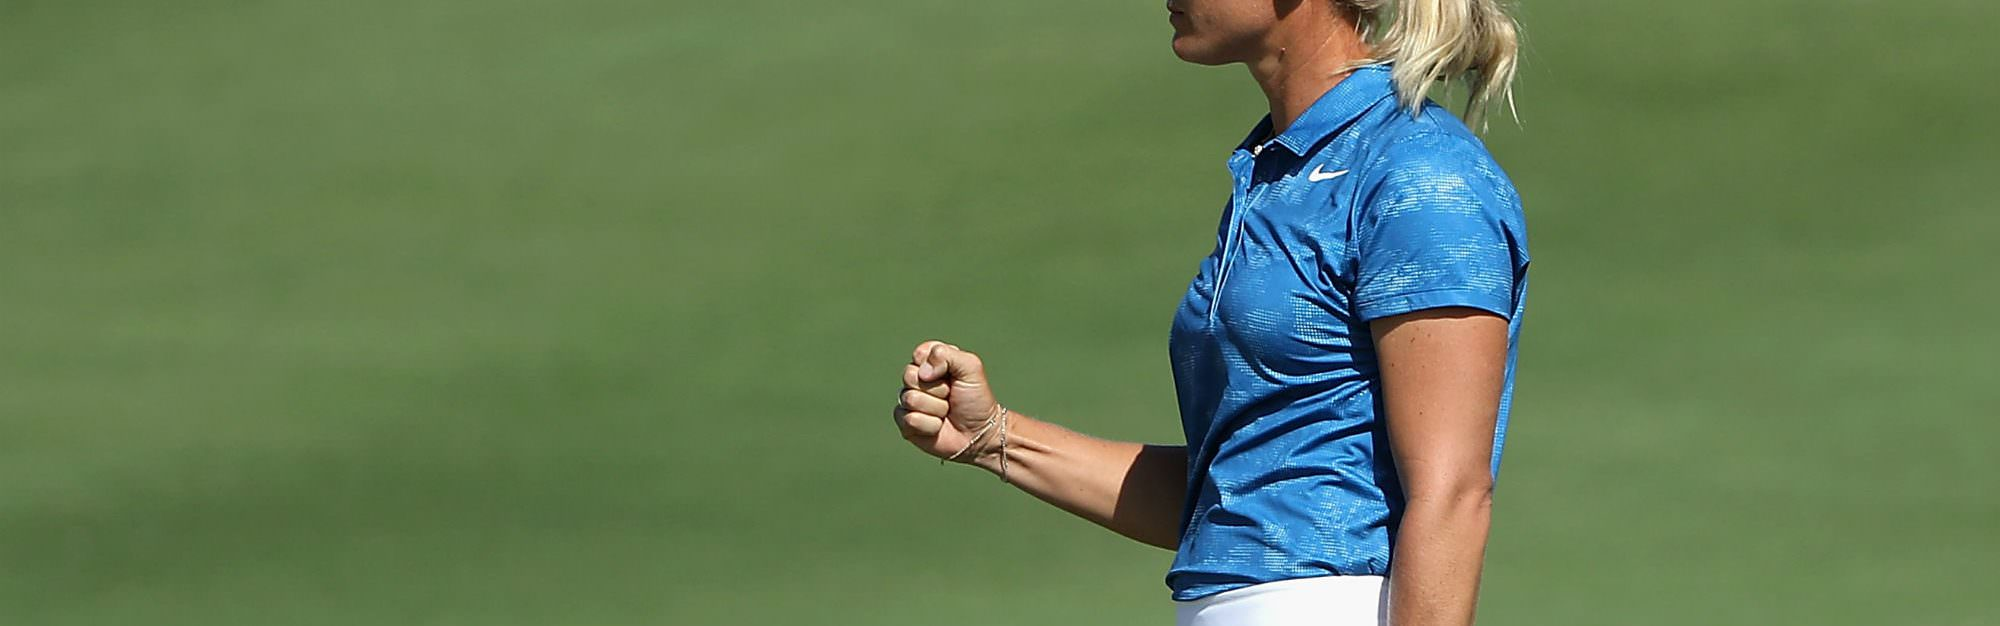 'It's Suzann Pettersen – I'd have picked her too'